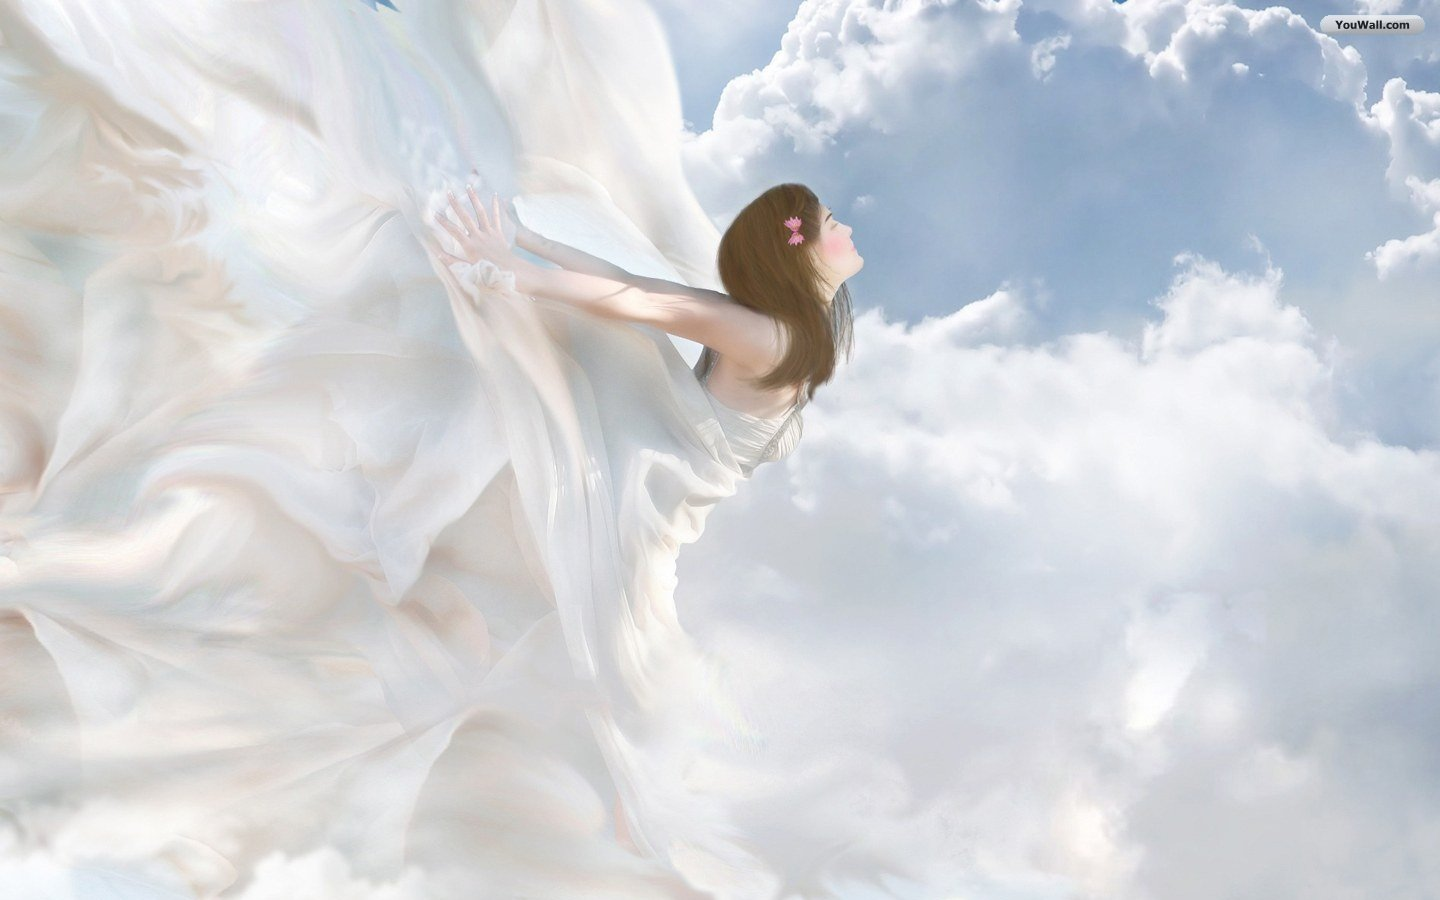 wallpaper Wallpaper Angels 1440x900